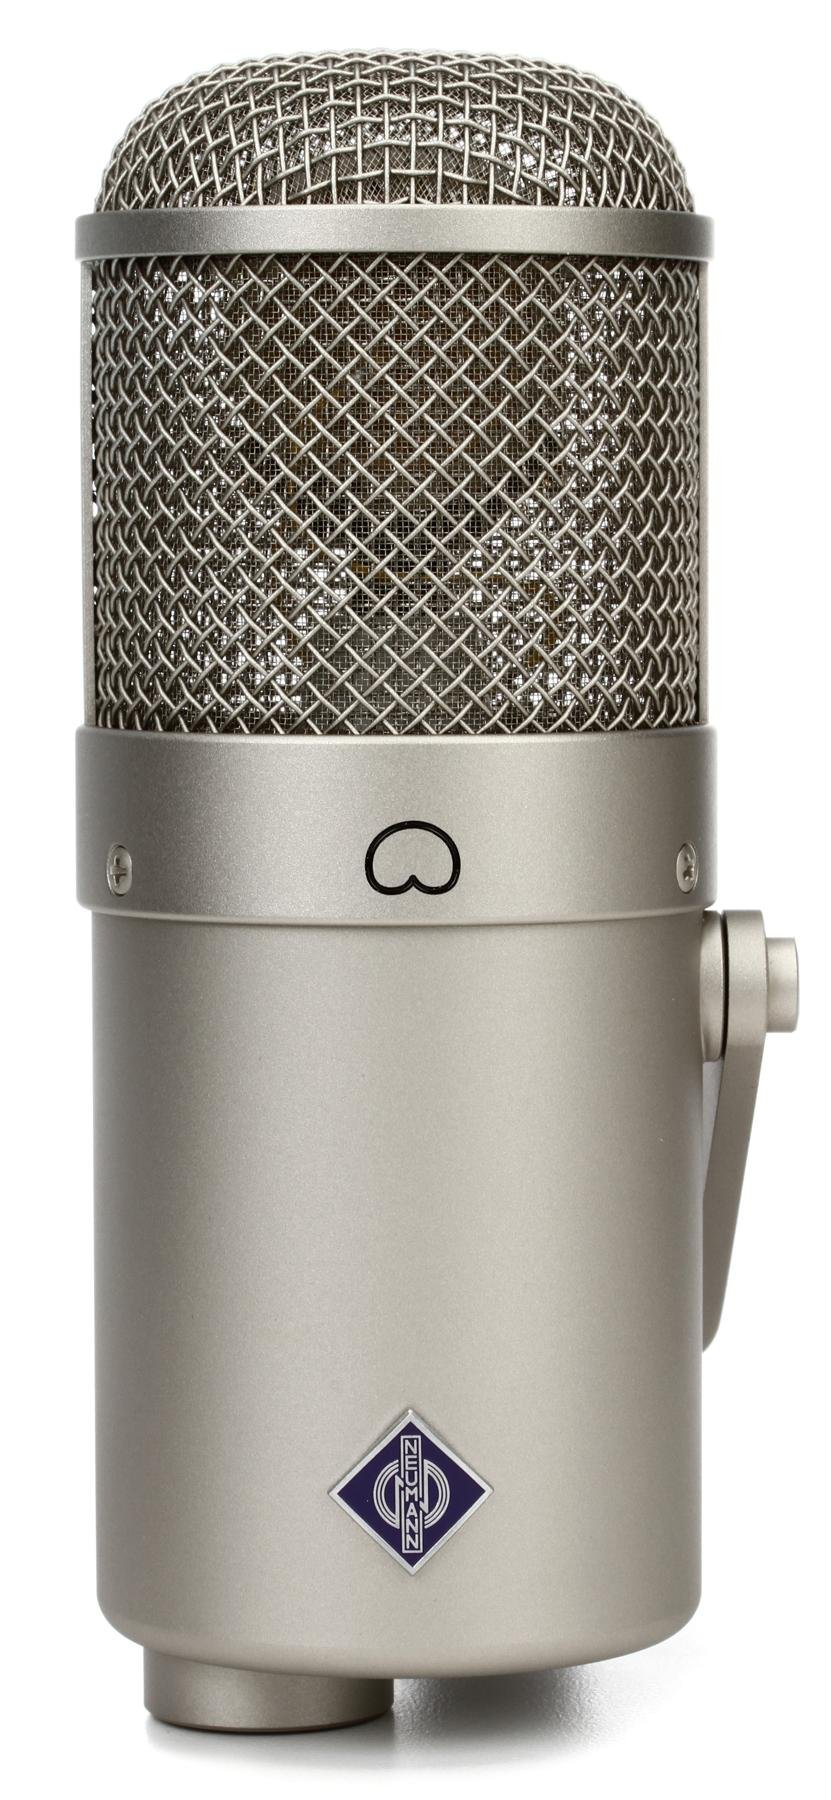 Neumann U 47 Fet Collectors Edition Large Diaphragm Condenser Power Pc Microphones From P48 Or Phantom 48 Volts Microphone Image 1